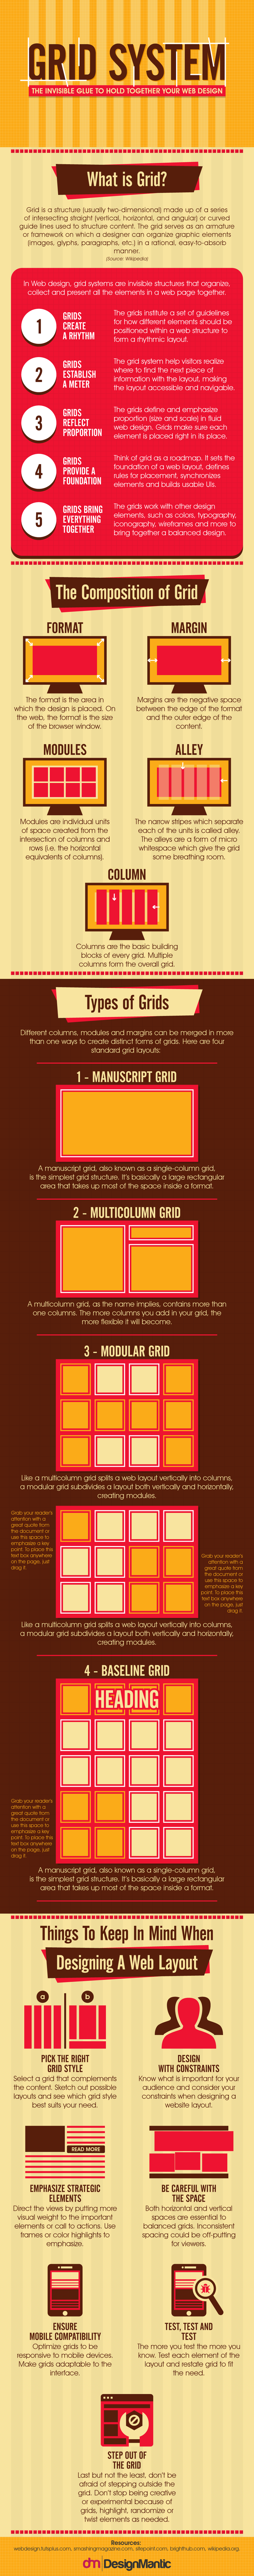 A Designer's Guide To The Web Grid System